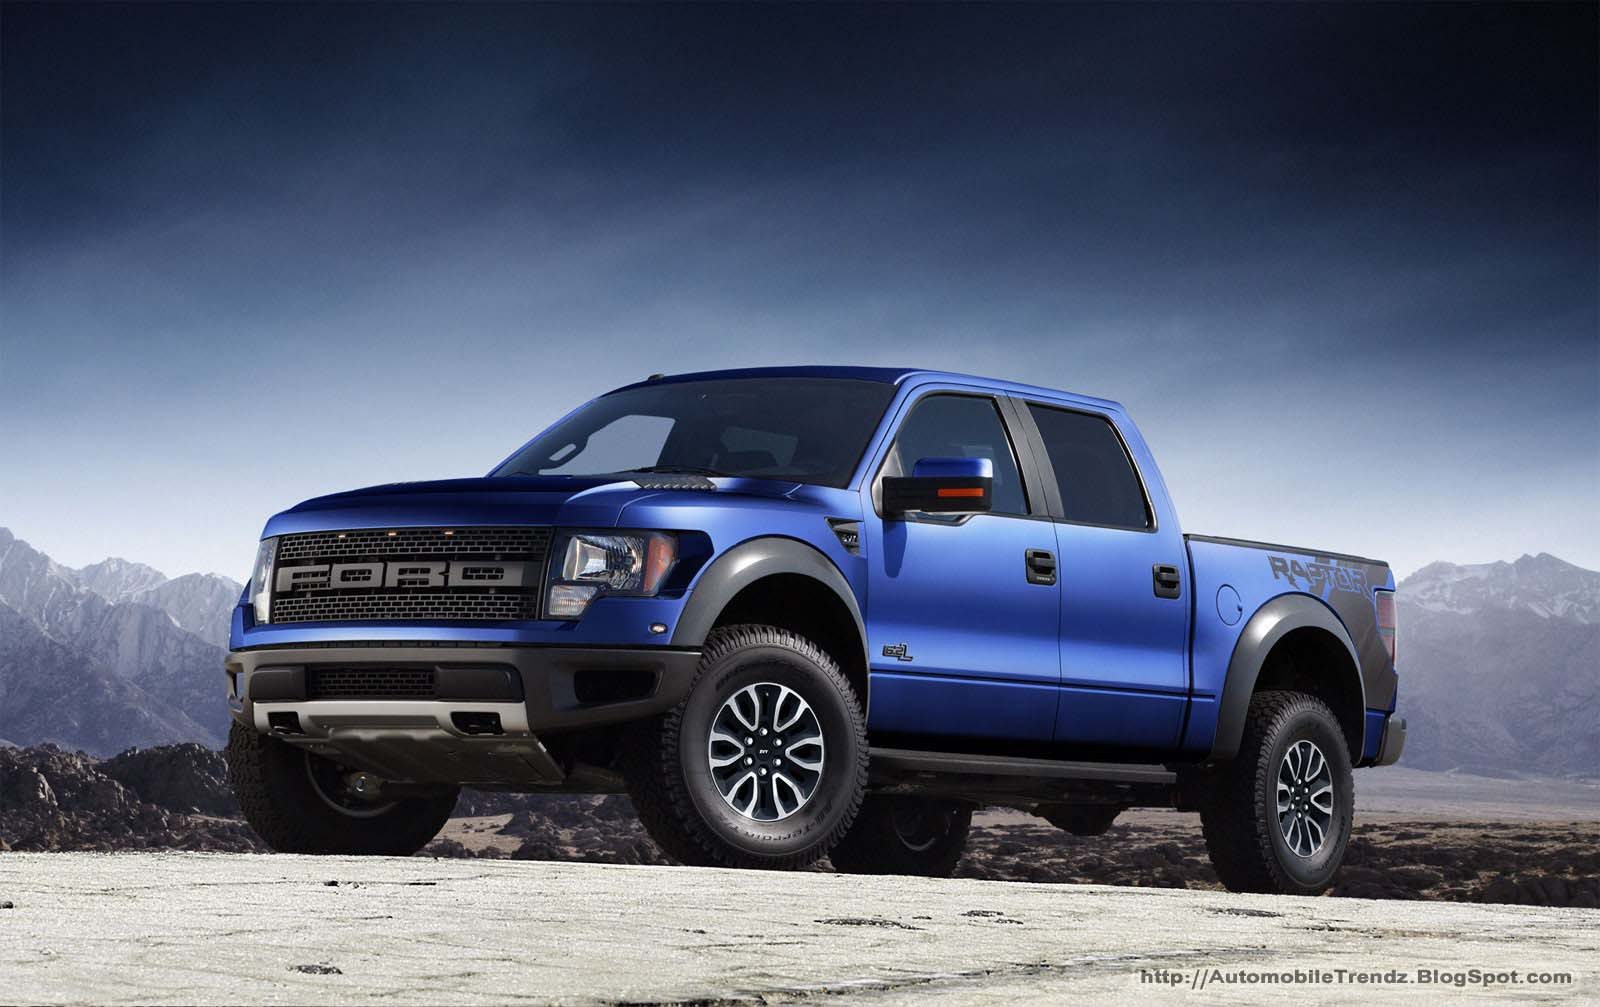 wallpaper ford raptor - photo #1